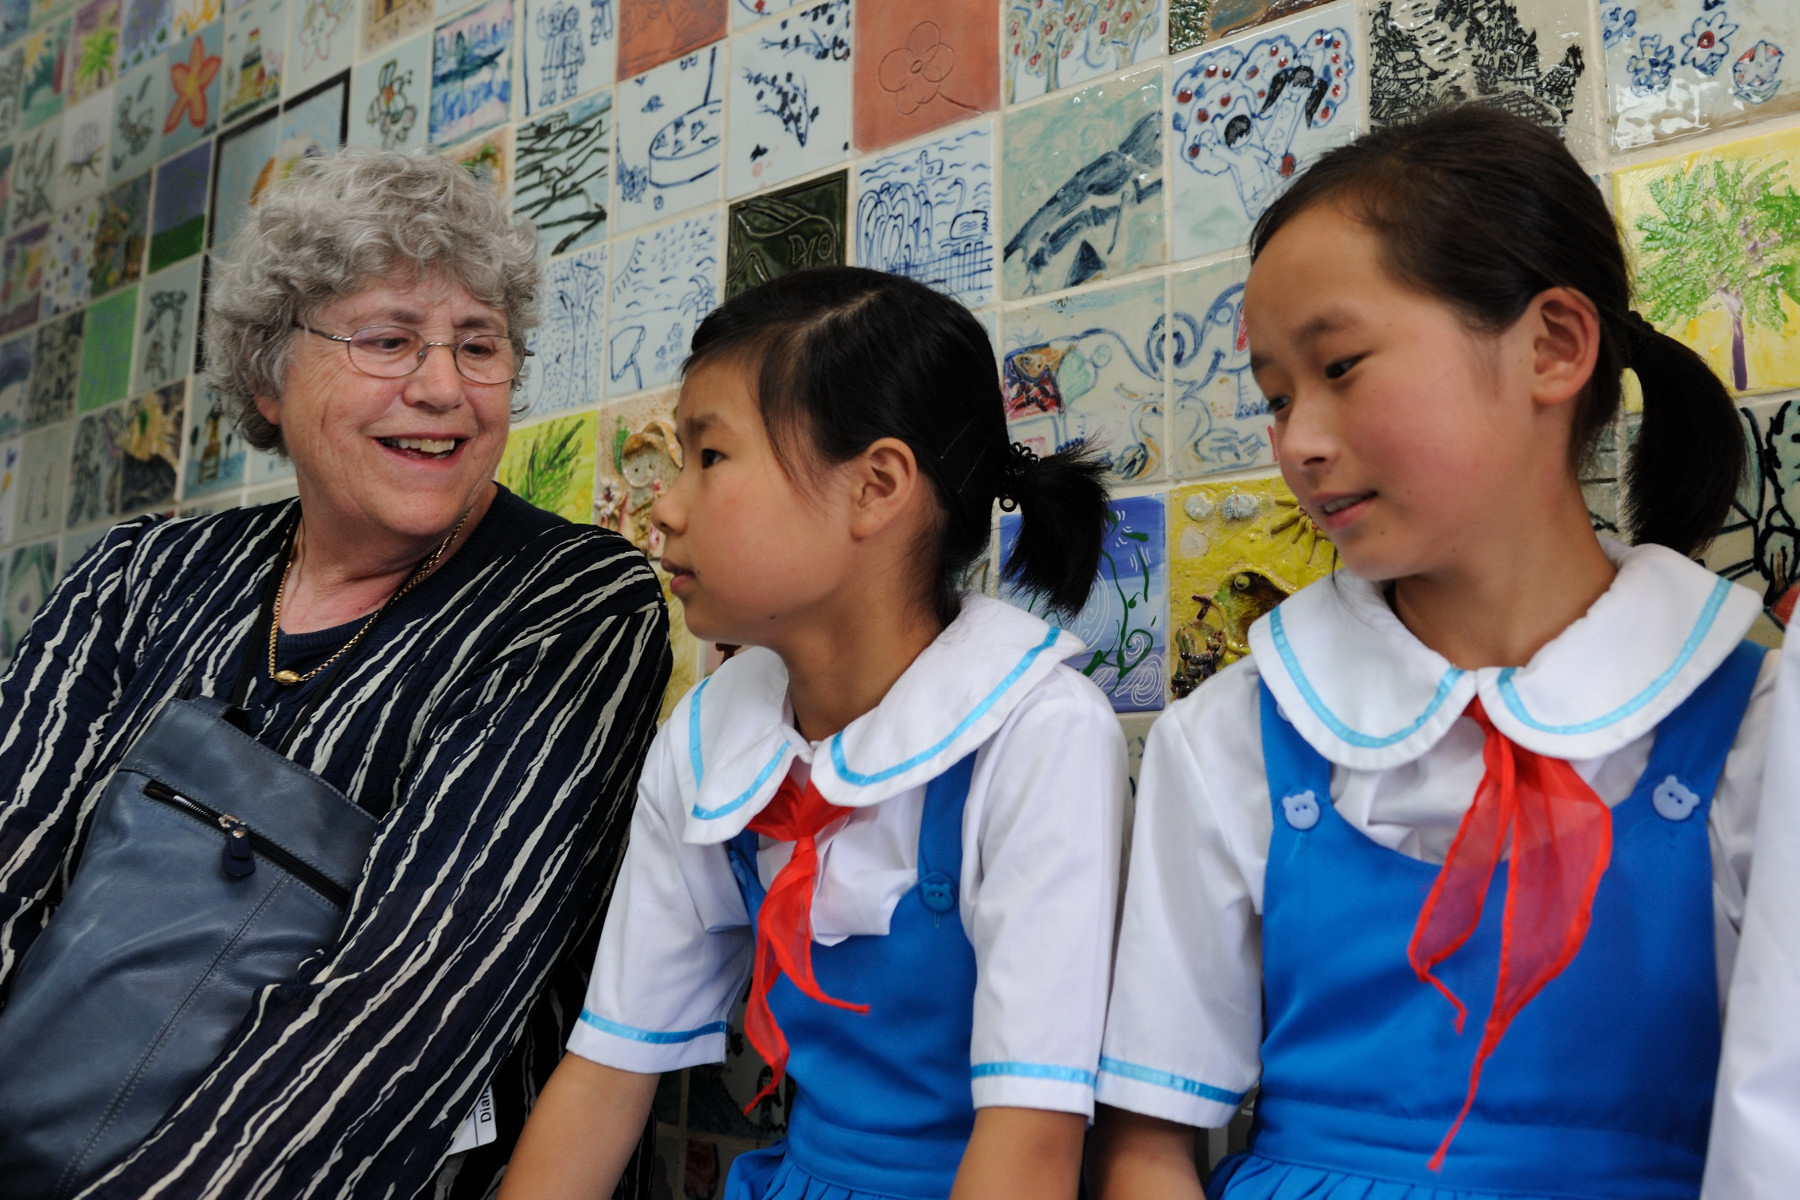 Canadian delegate Diana Lary, Professor Emeriti of Chinese History, University of British Columbia, met some students.